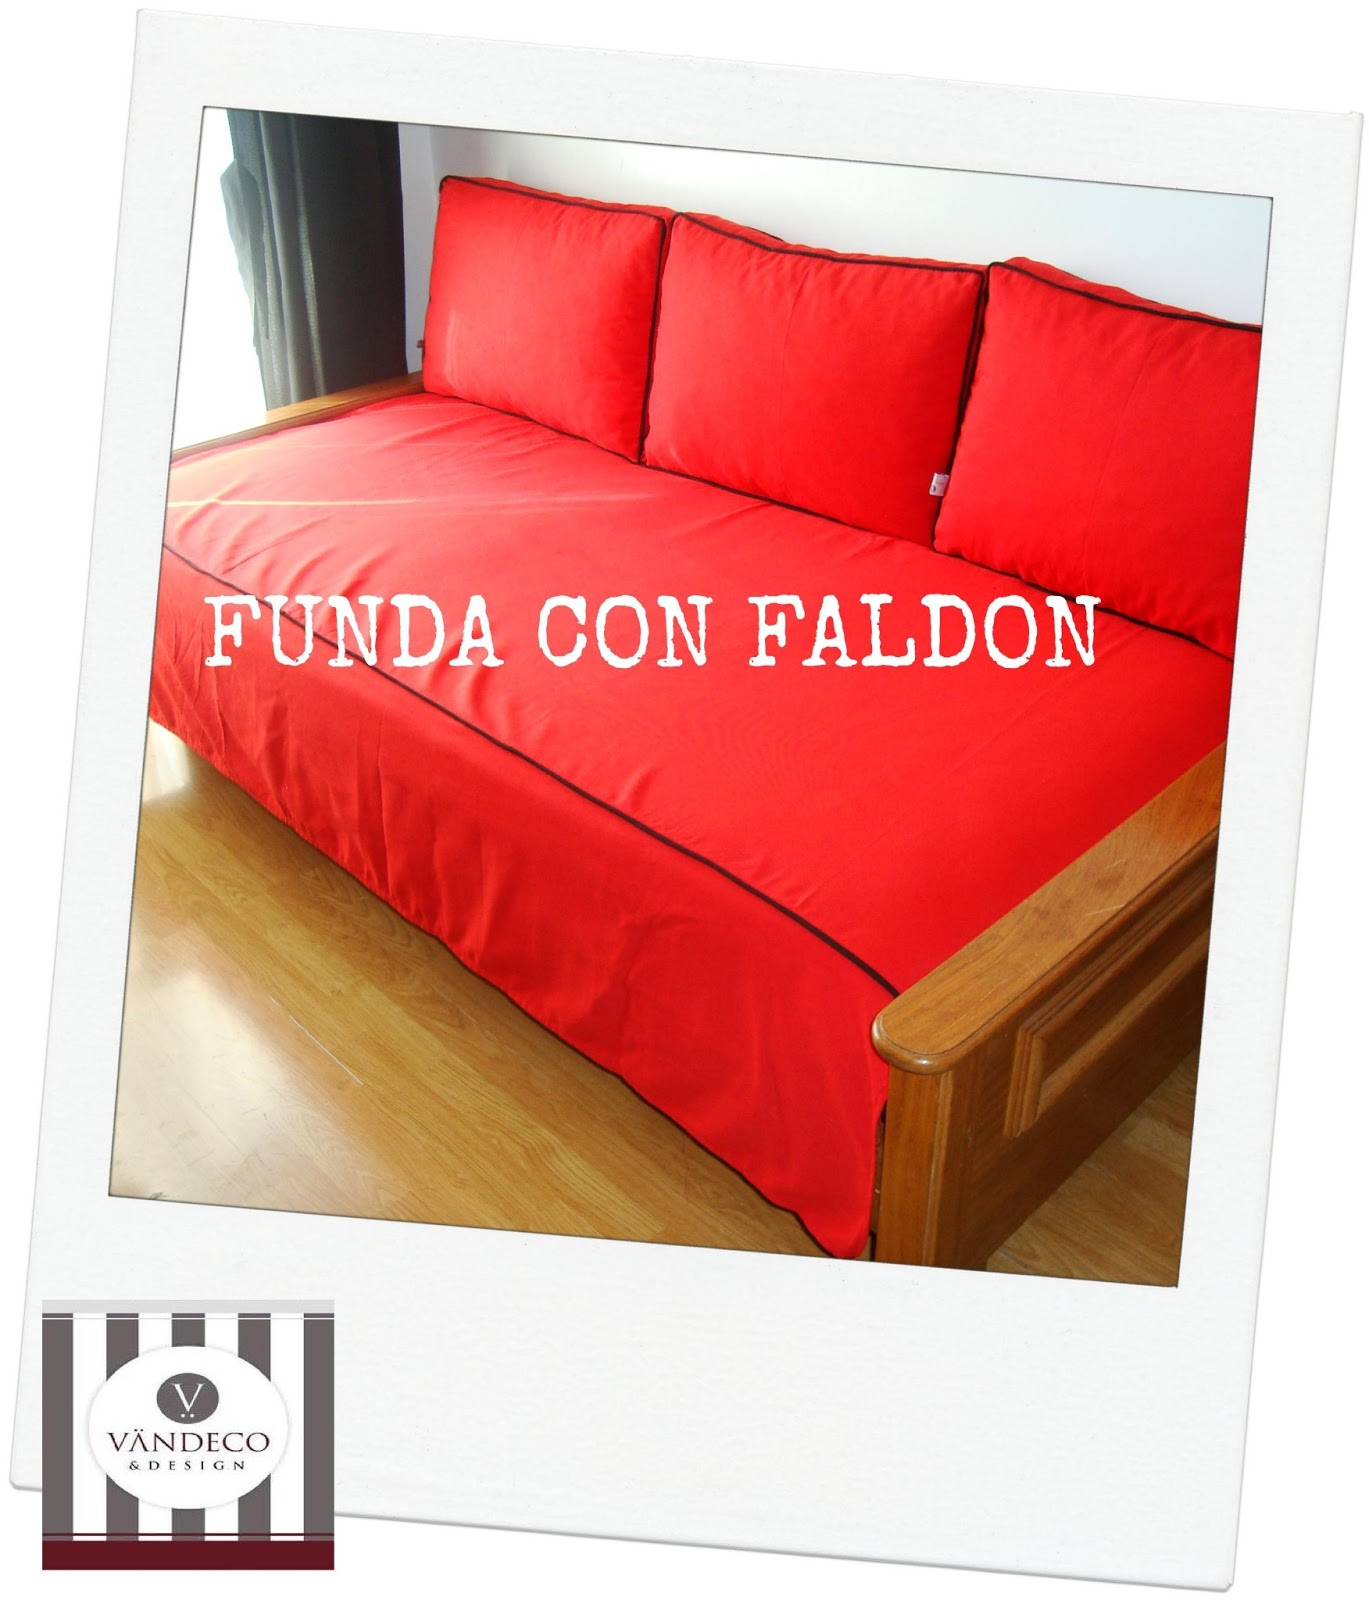 V ndeco design mas ideas de kits para convertir una cama for Cuanto sale un sofa cama